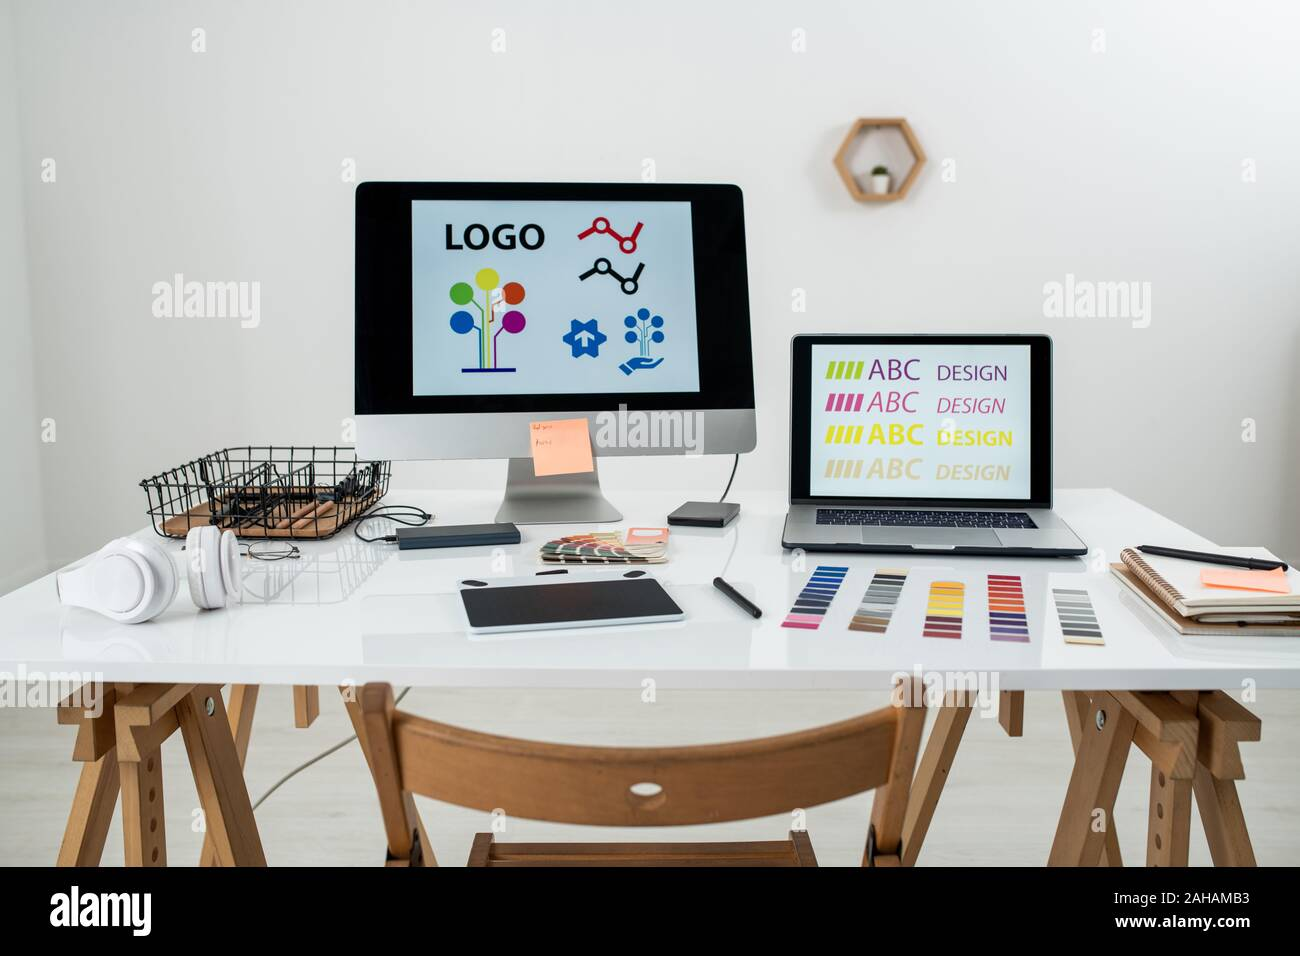 Working Supplies And Gadgets On Workplace Of Contemporary Freelance Web Designer Stock Photo Alamy